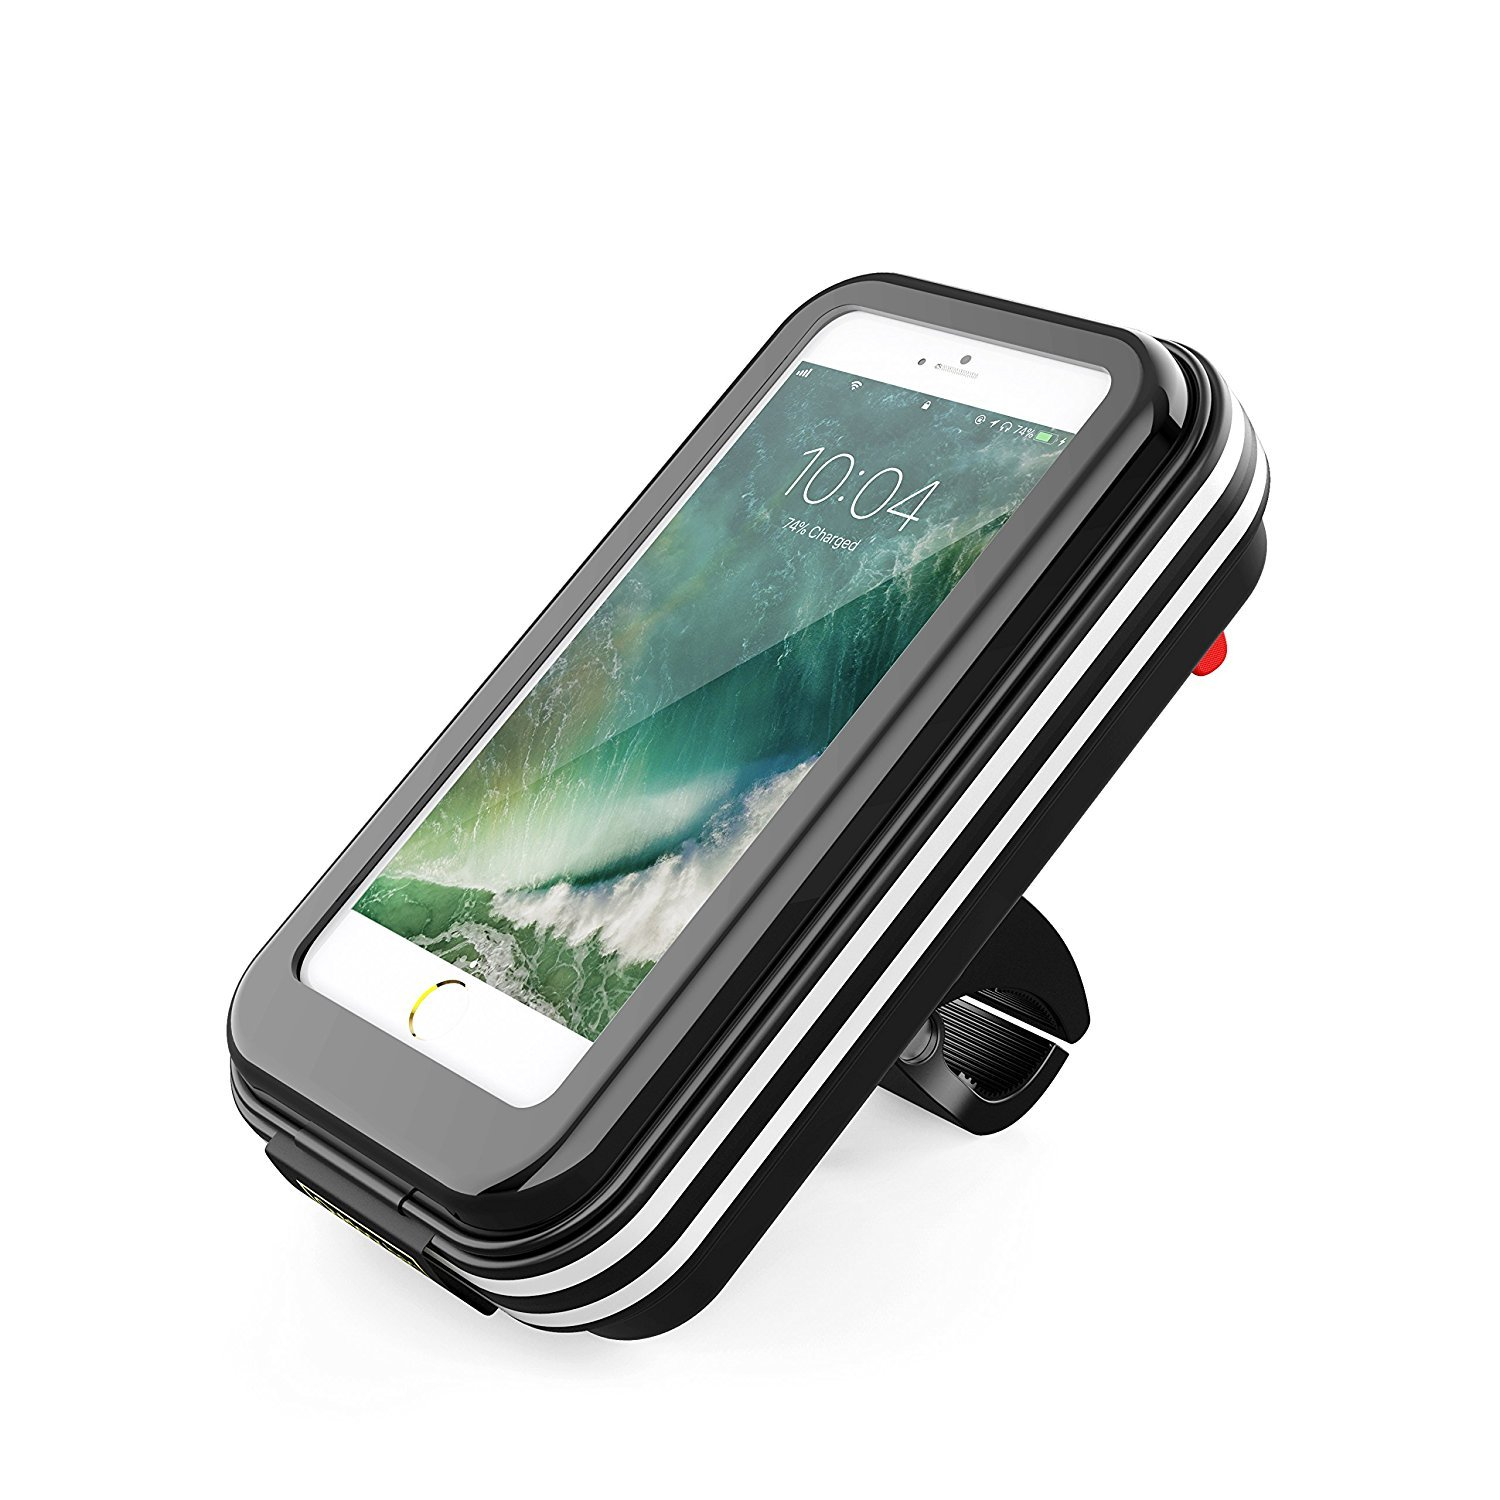 Wiki valley Bike Phone Mount Bag, 6.2inch 360 Rotatable Universal Waterproof Bicycle Phone Bags Holder Pouch Holster Case for iPhone 8 plus/8/7 plus/7/6plus/6s Plus, Support Touch ID